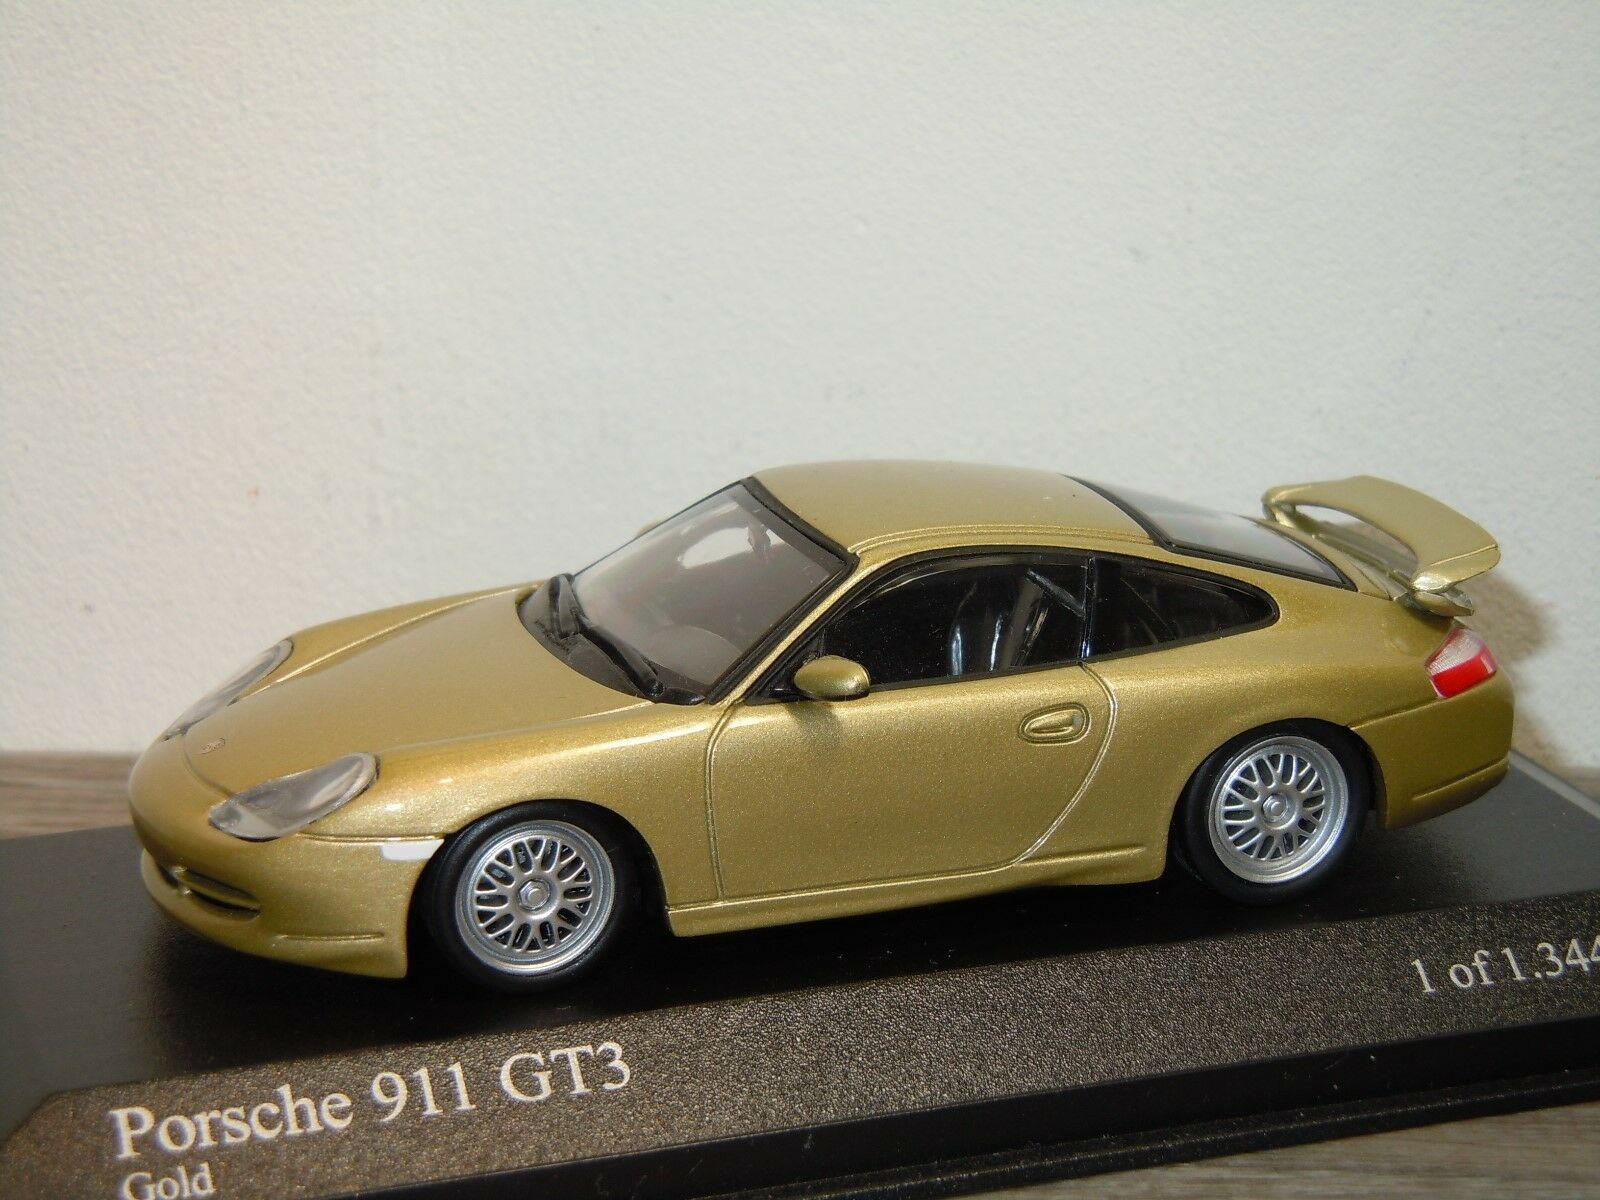 Porsche 911 996 996 996 GT3 1999 - Minichamps 1 43 in Box 34706 5c2618